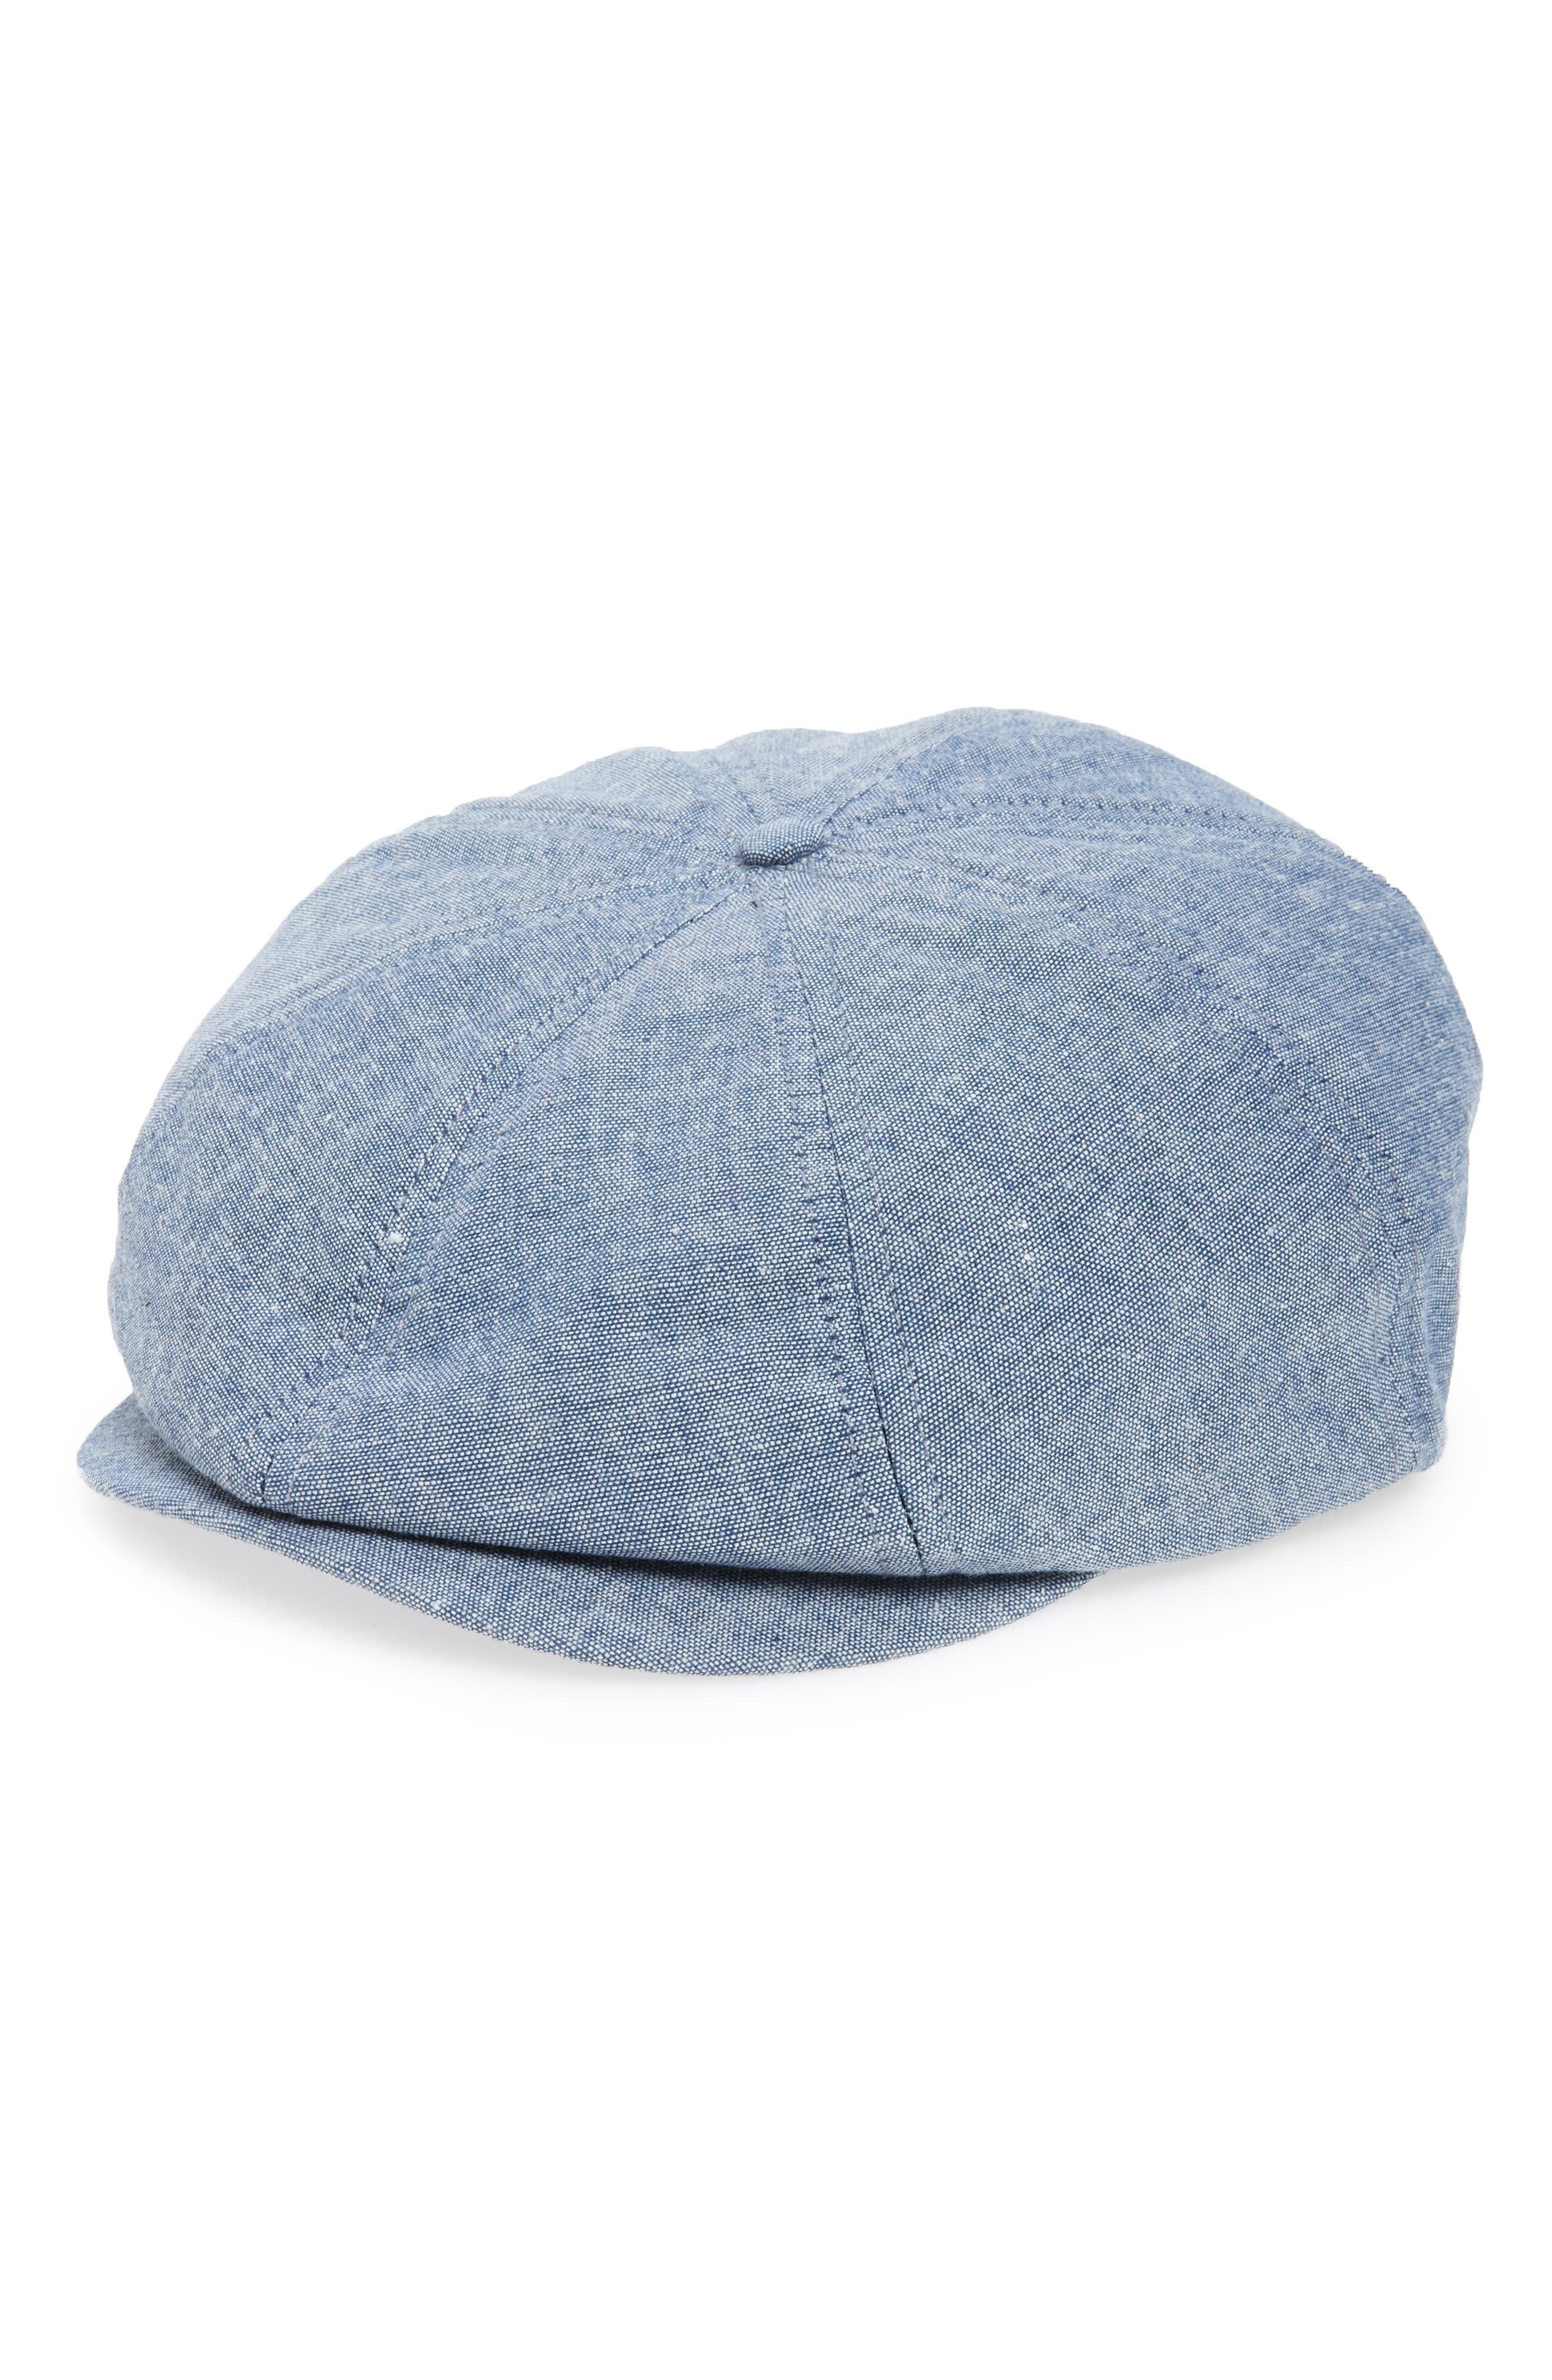 Brixton Brood 8 Driving Cap